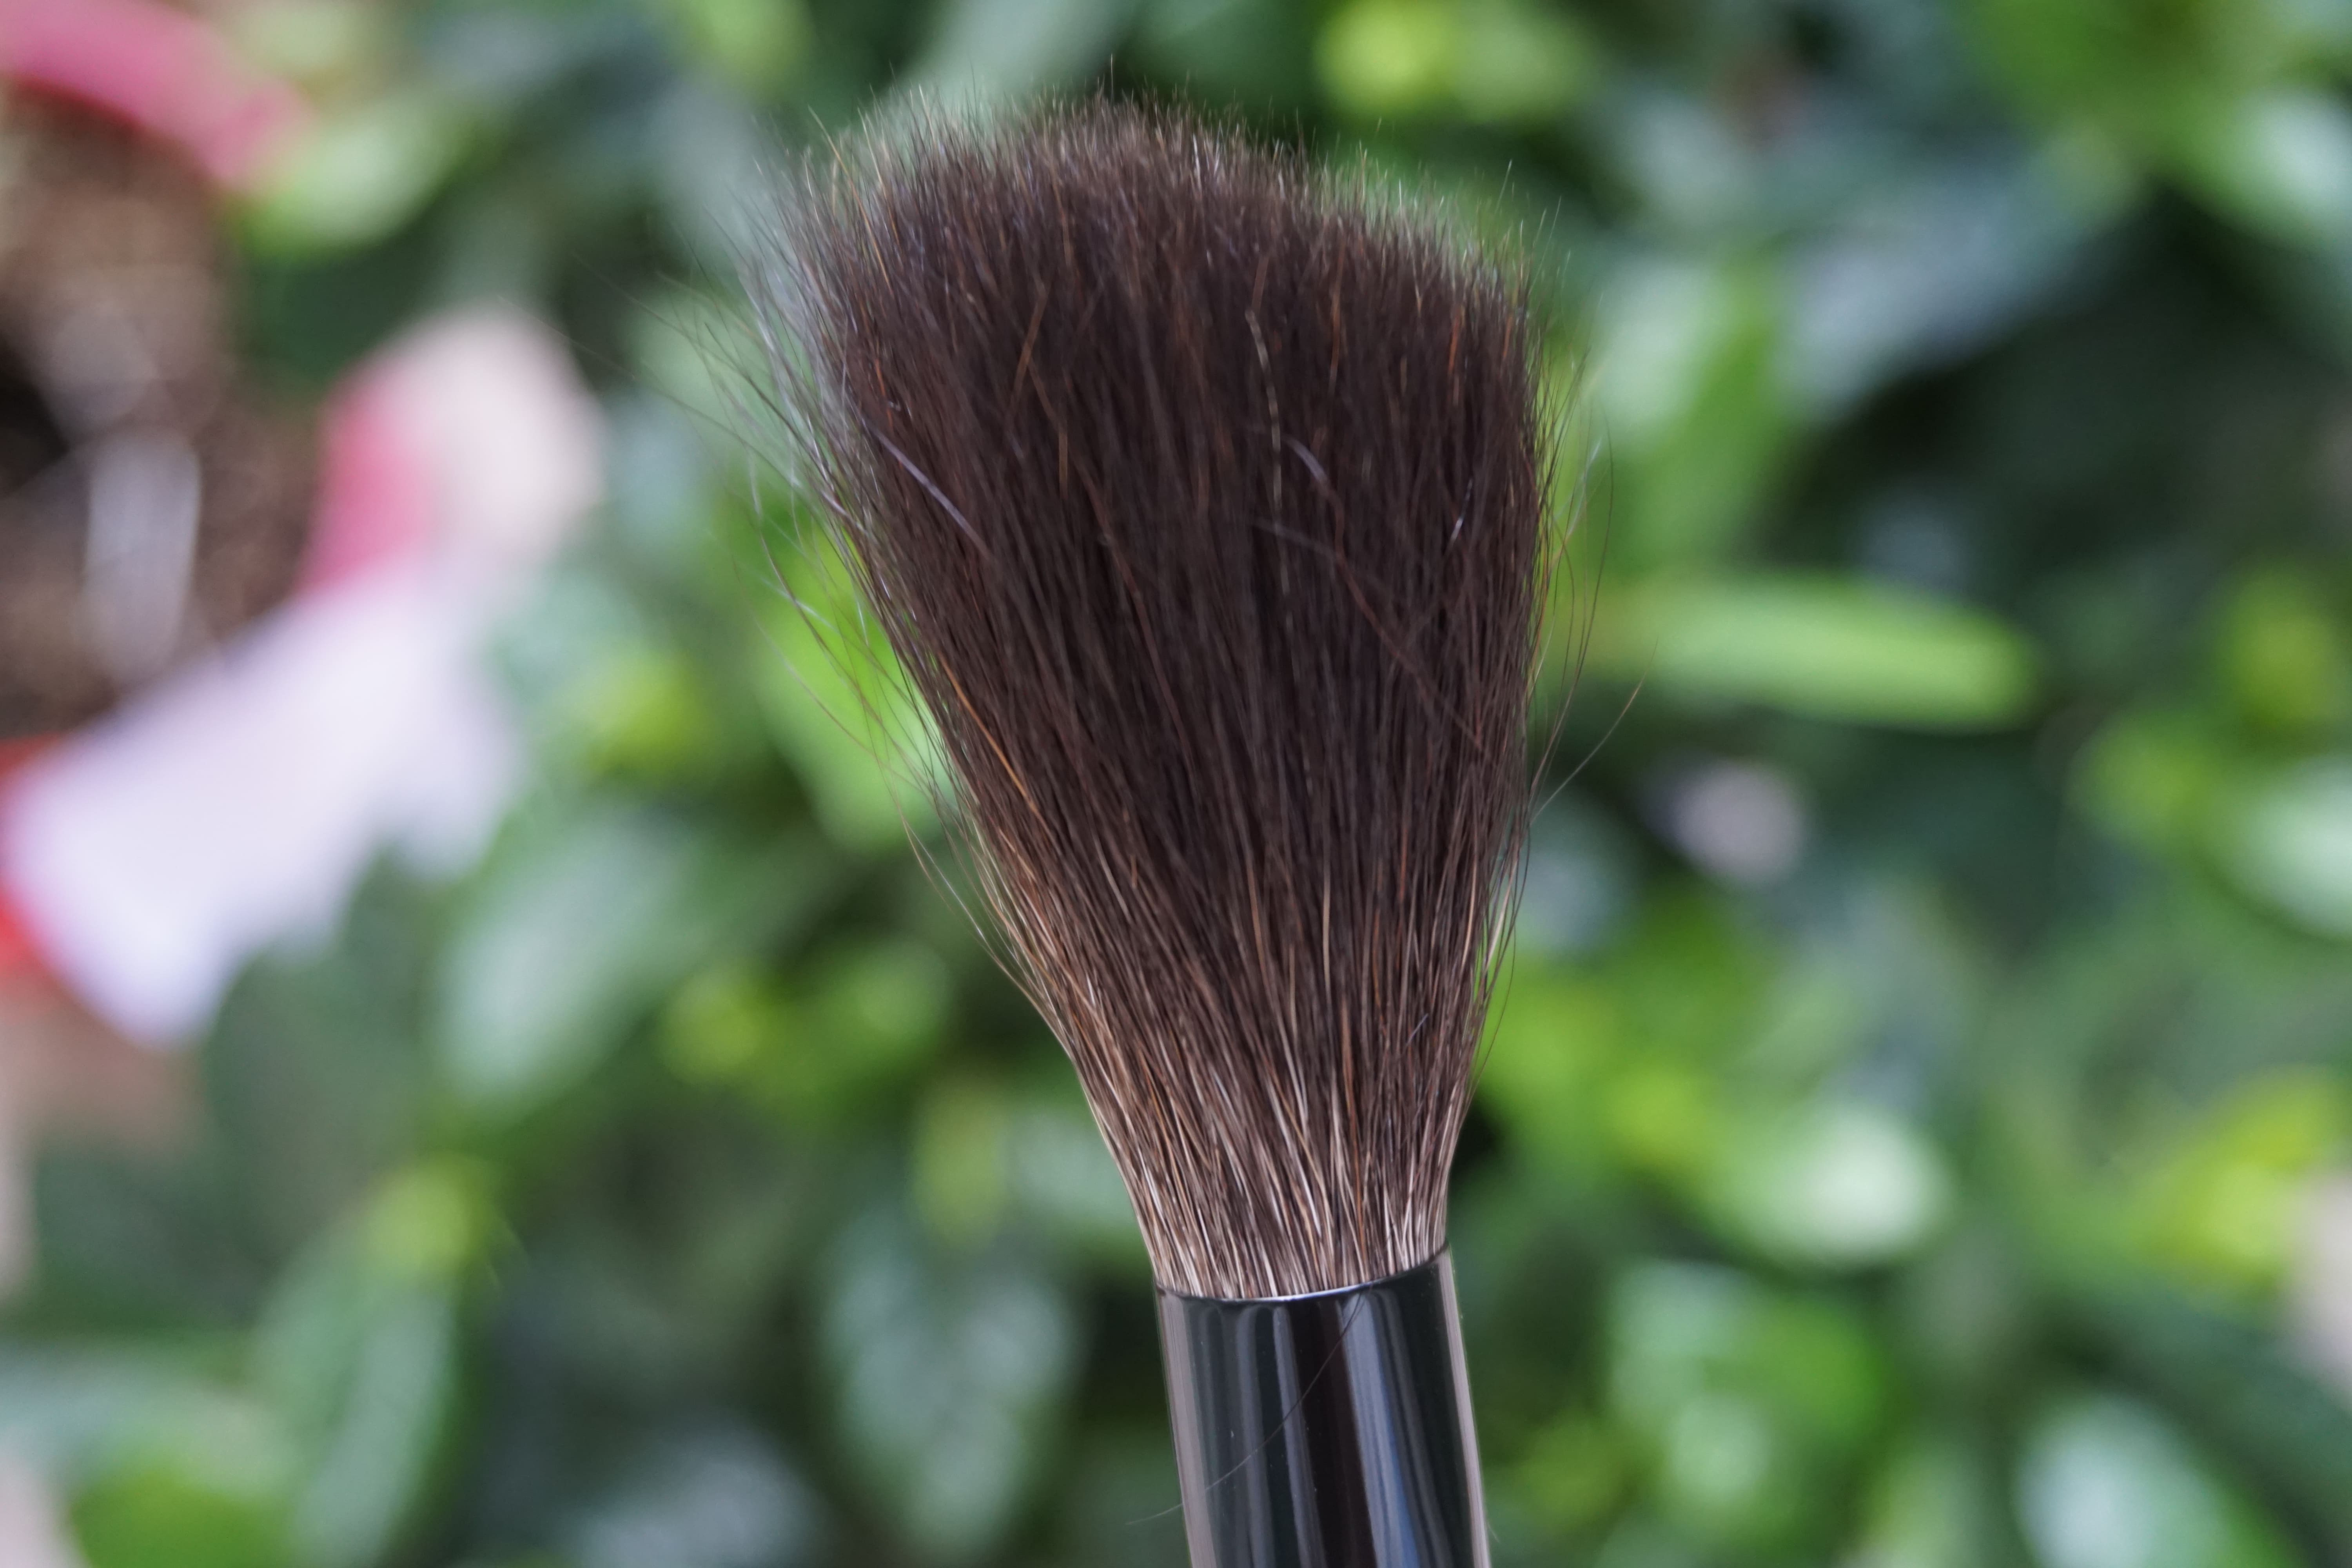 Wayne Goss 2017 Brush hair